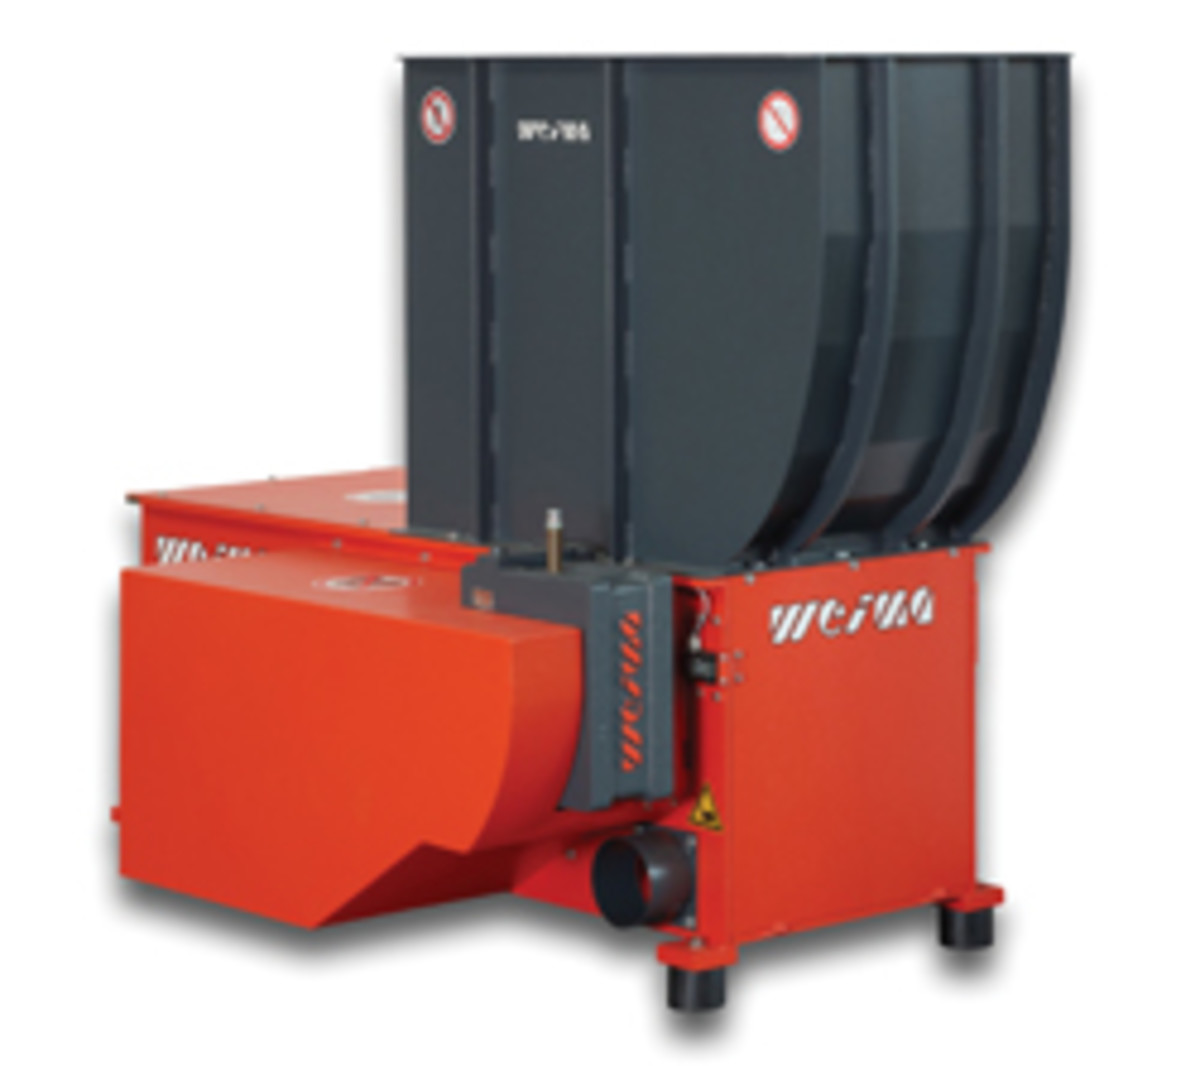 Weima's model WLK4 shredder.